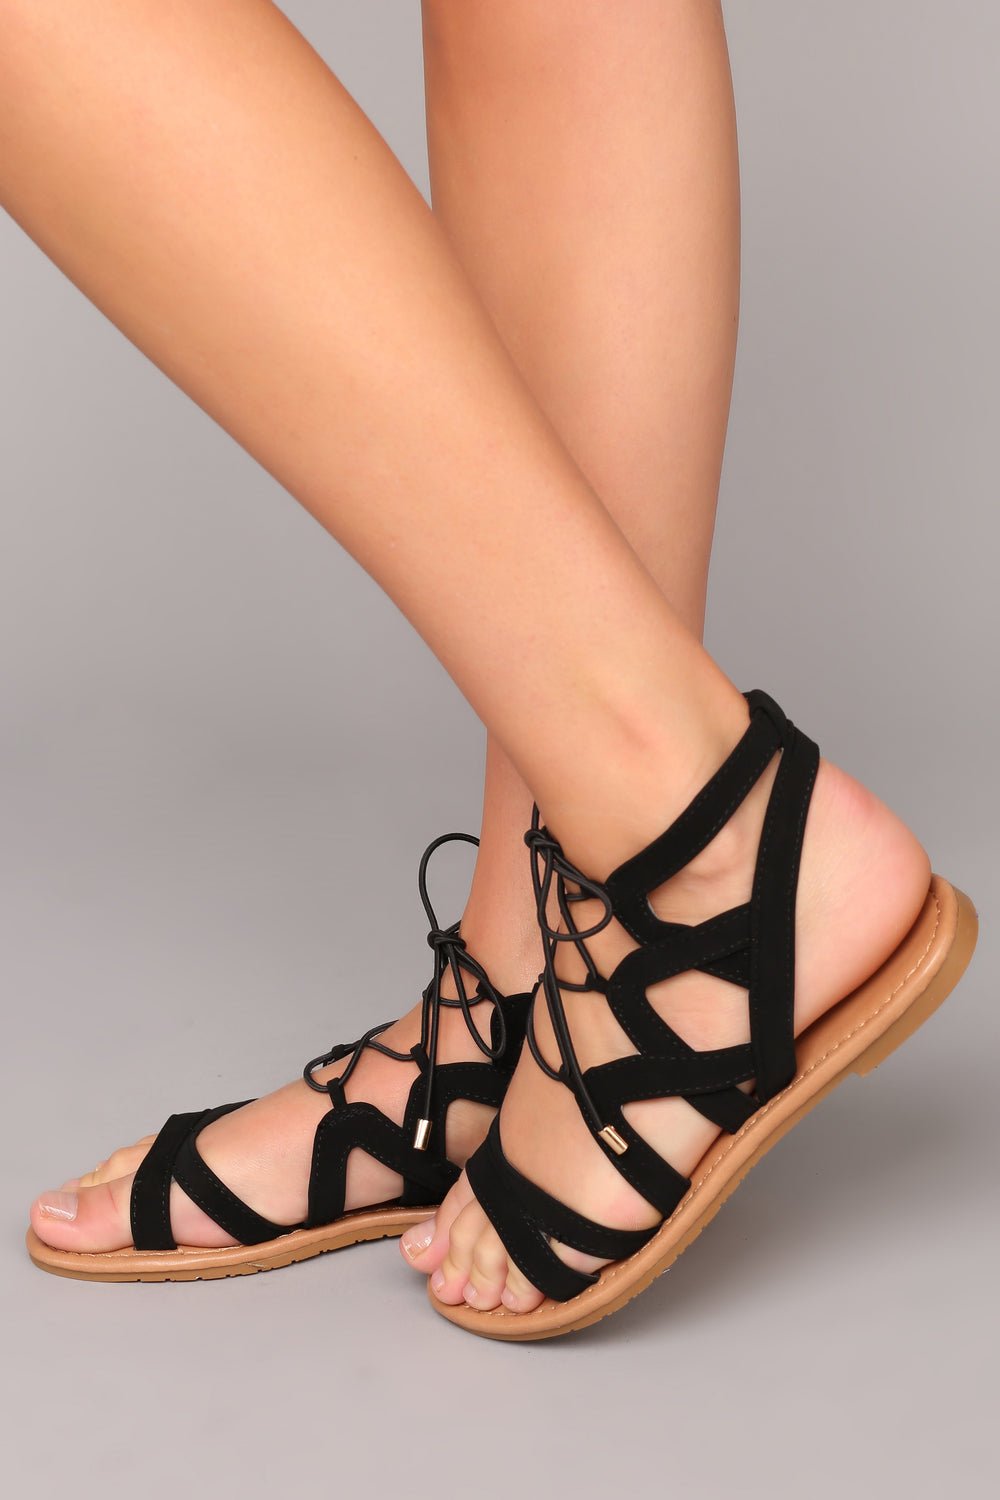 Twist It Up Sandal - Black